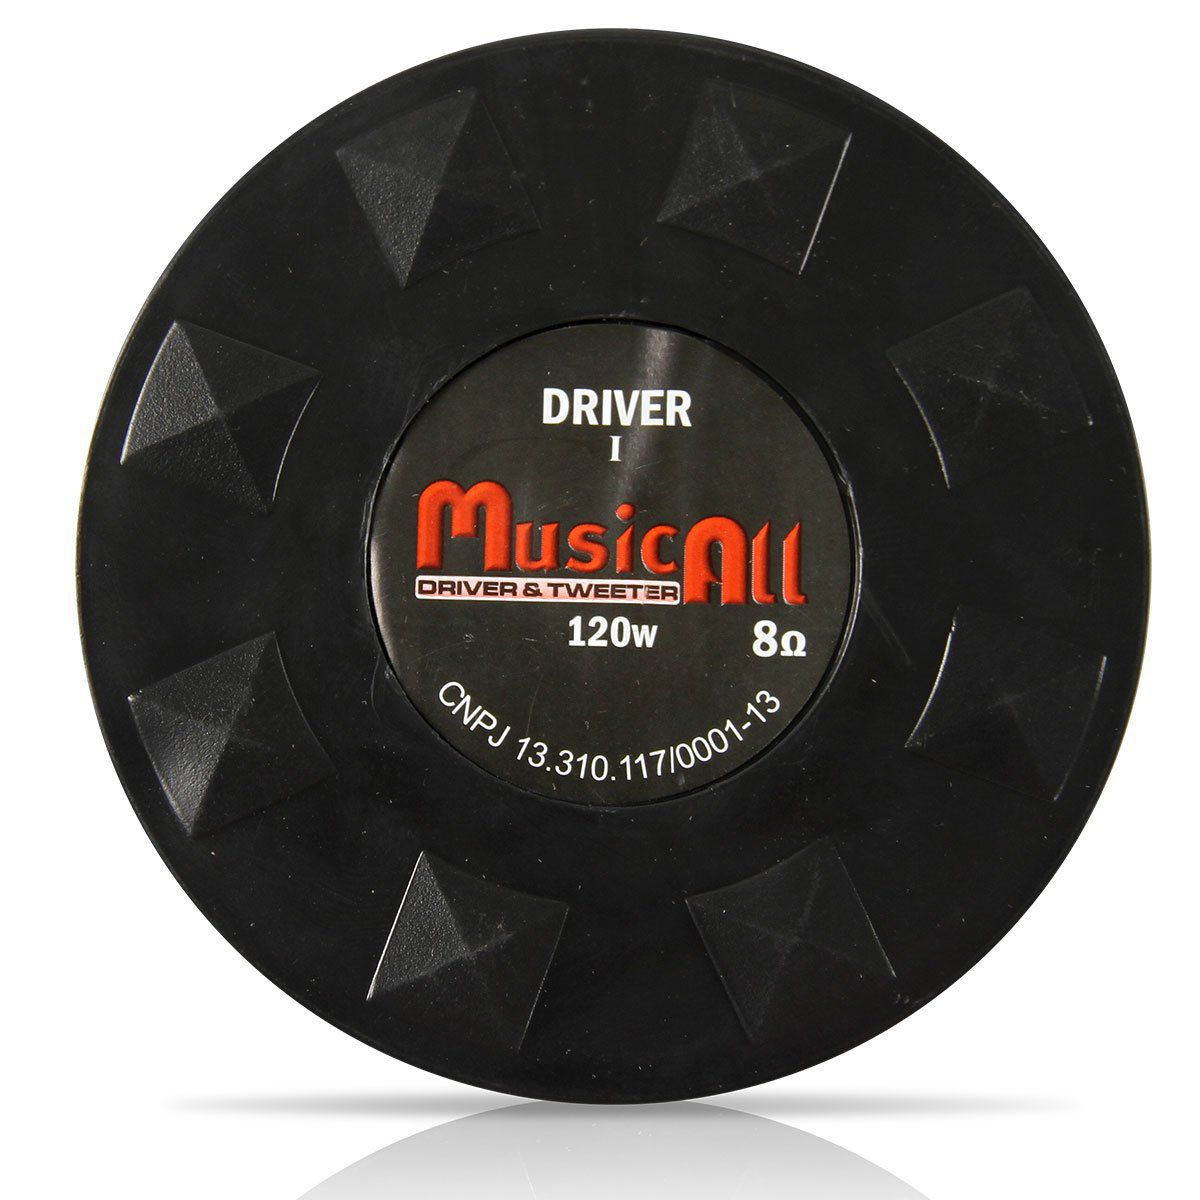 Driver Musicall I 120W Rms 8 Omhs